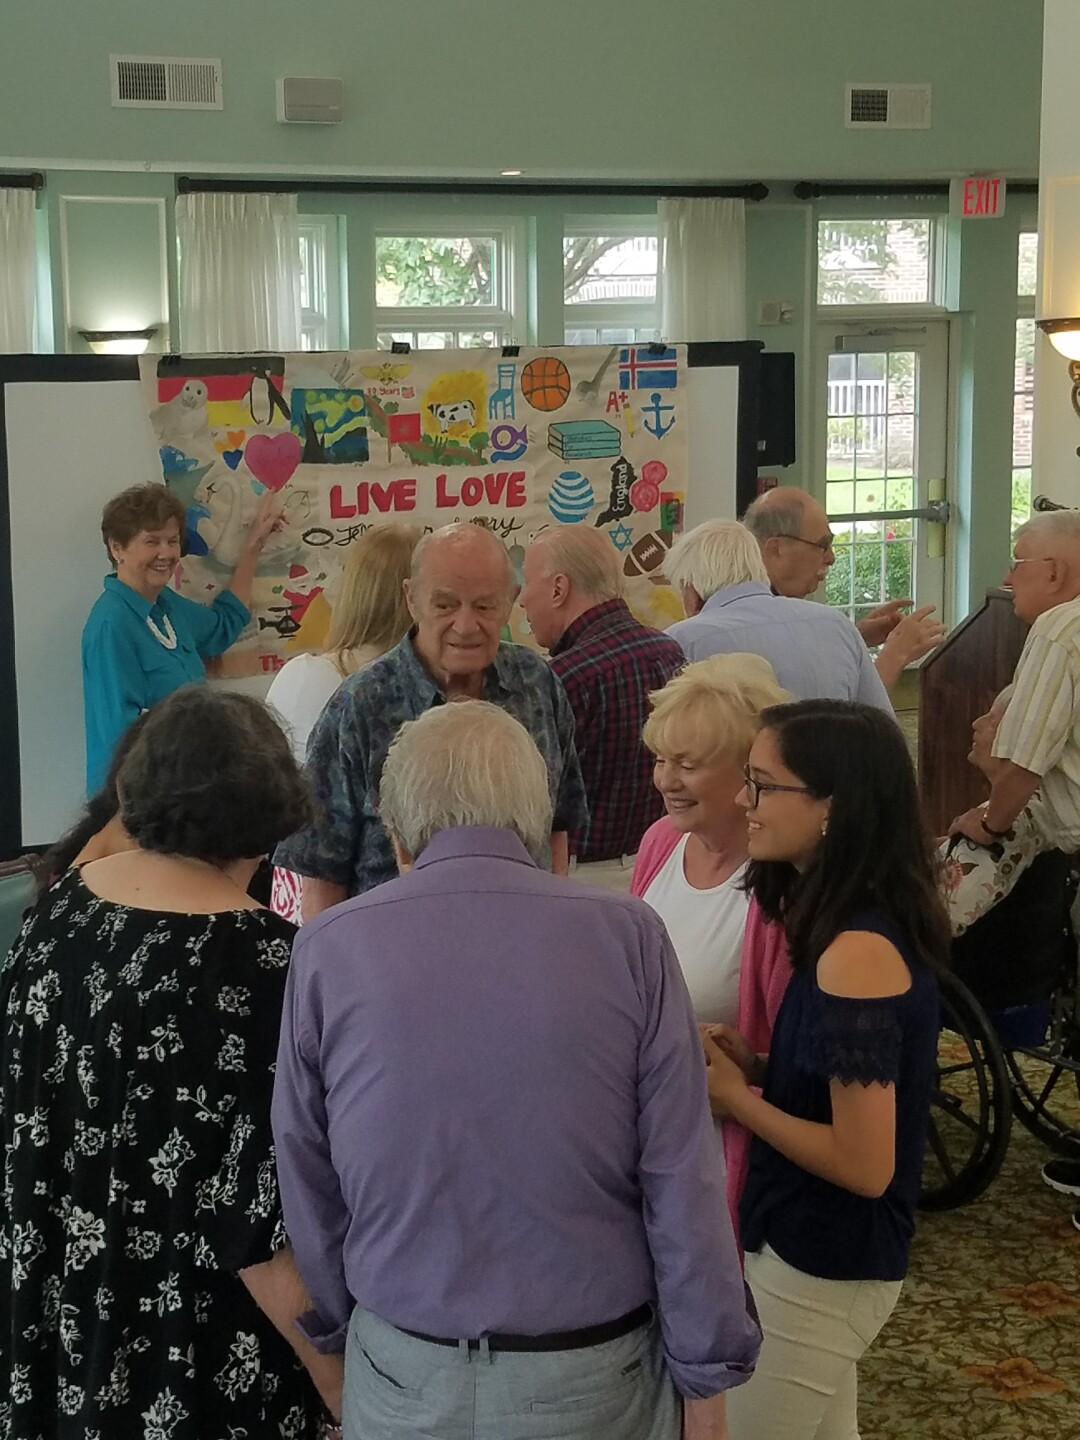 Photos: Seniors at Virginia Beach retirement community see their stories come to life through students' artwork